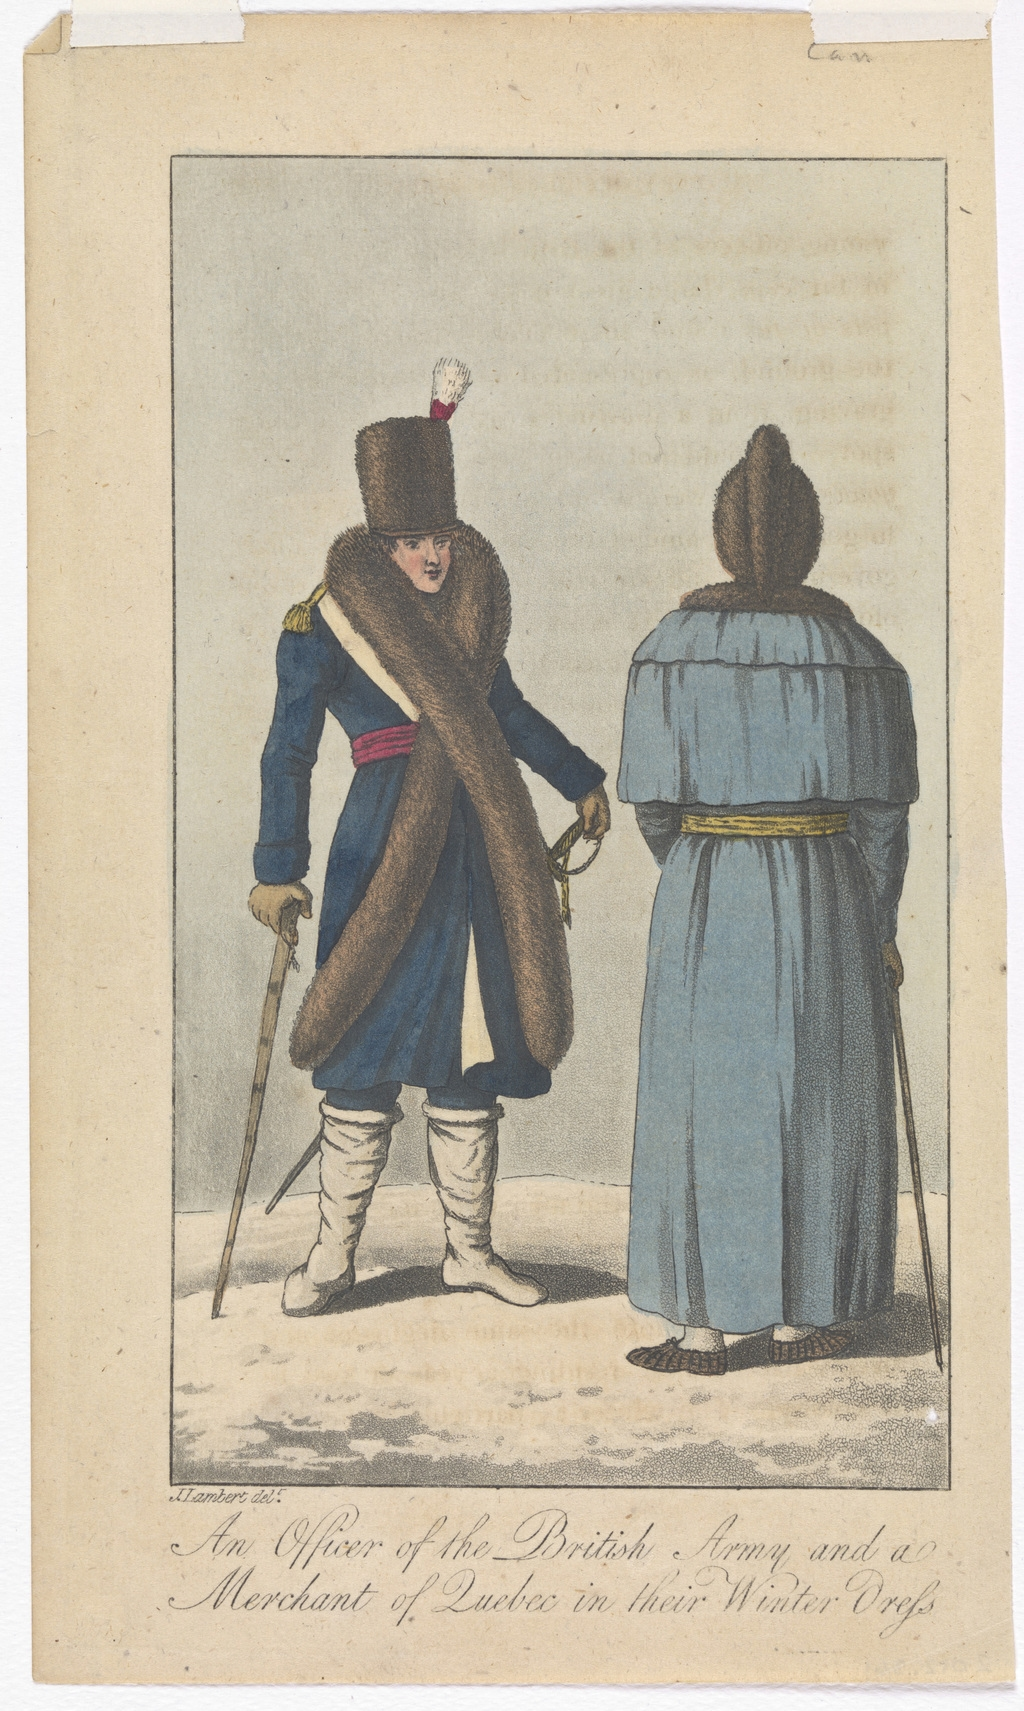 Un officier de l'armée britannique et un marchand de Québec dans leurs vêtements d'hiver, extrait de l'ouvrage Travels through Canada and the United States of North America in the Years 1806, 1807, & 1808